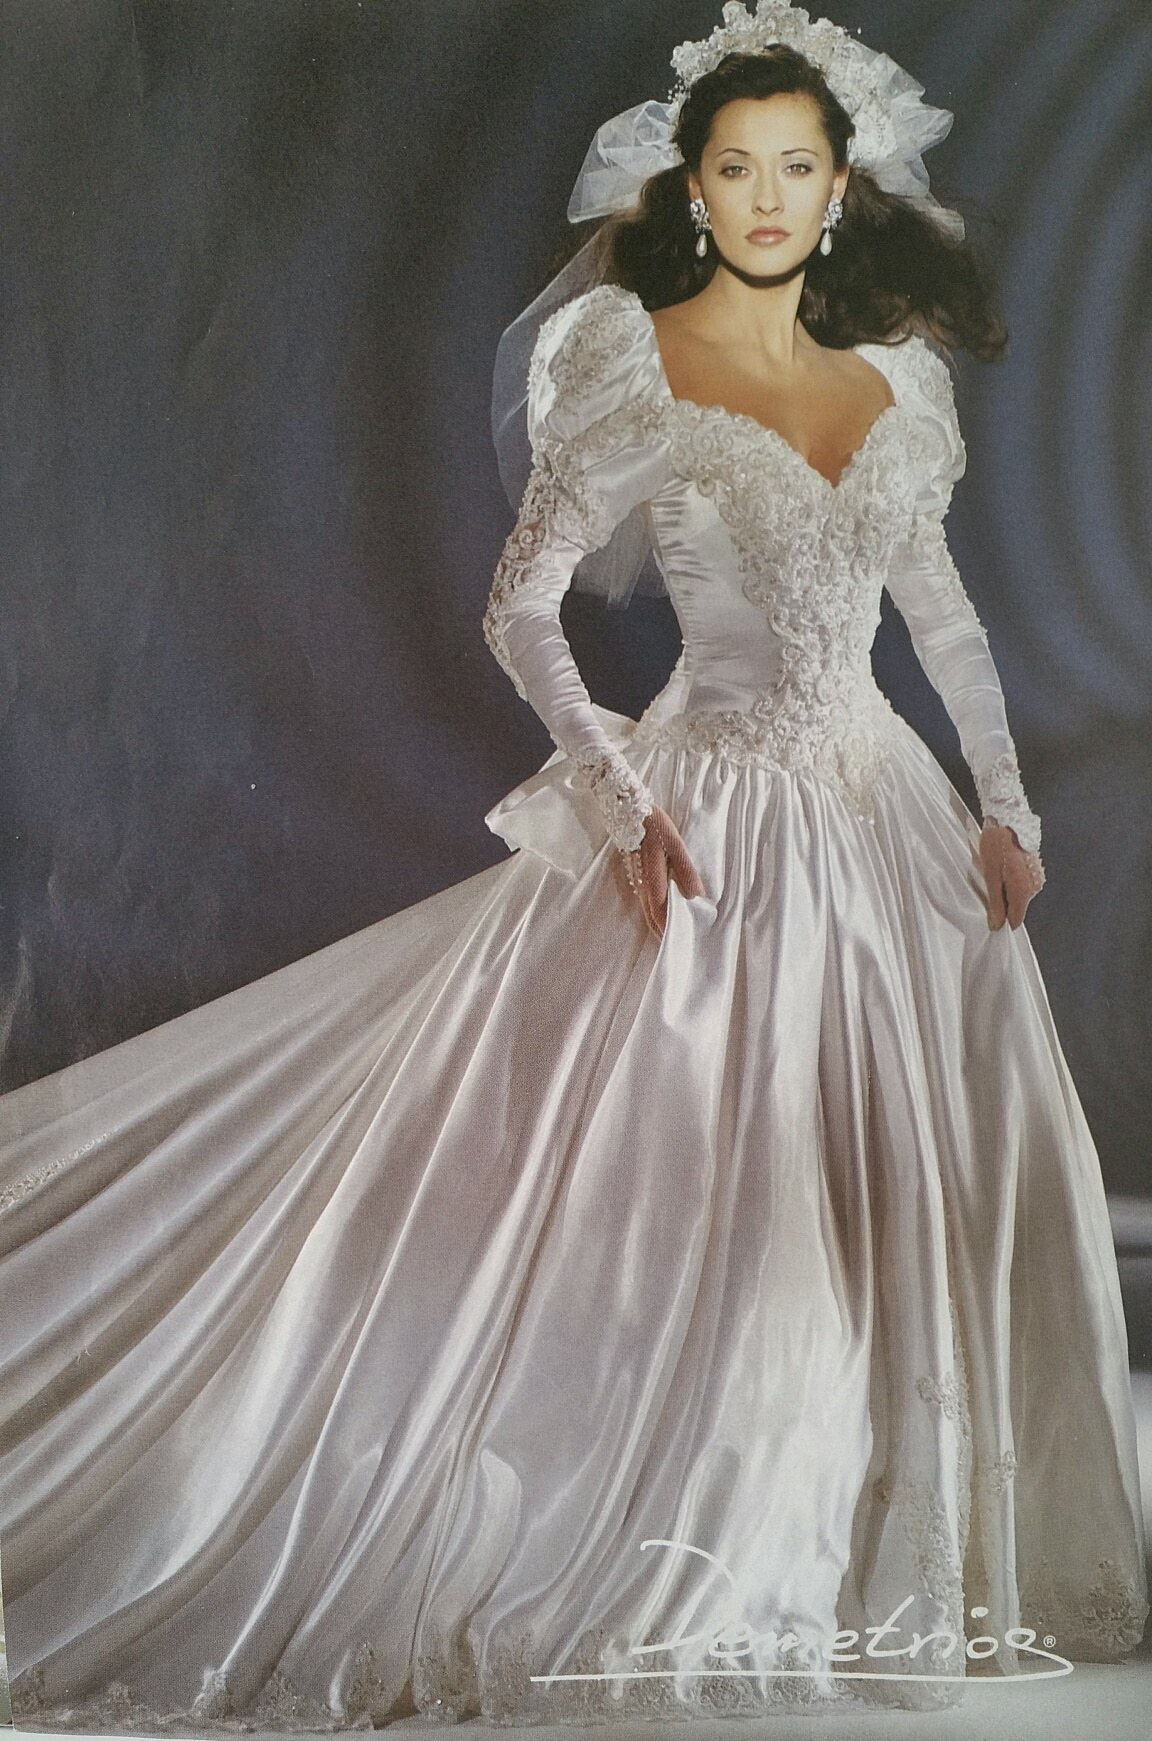 Demetrios that gown looks fabulously expensive s